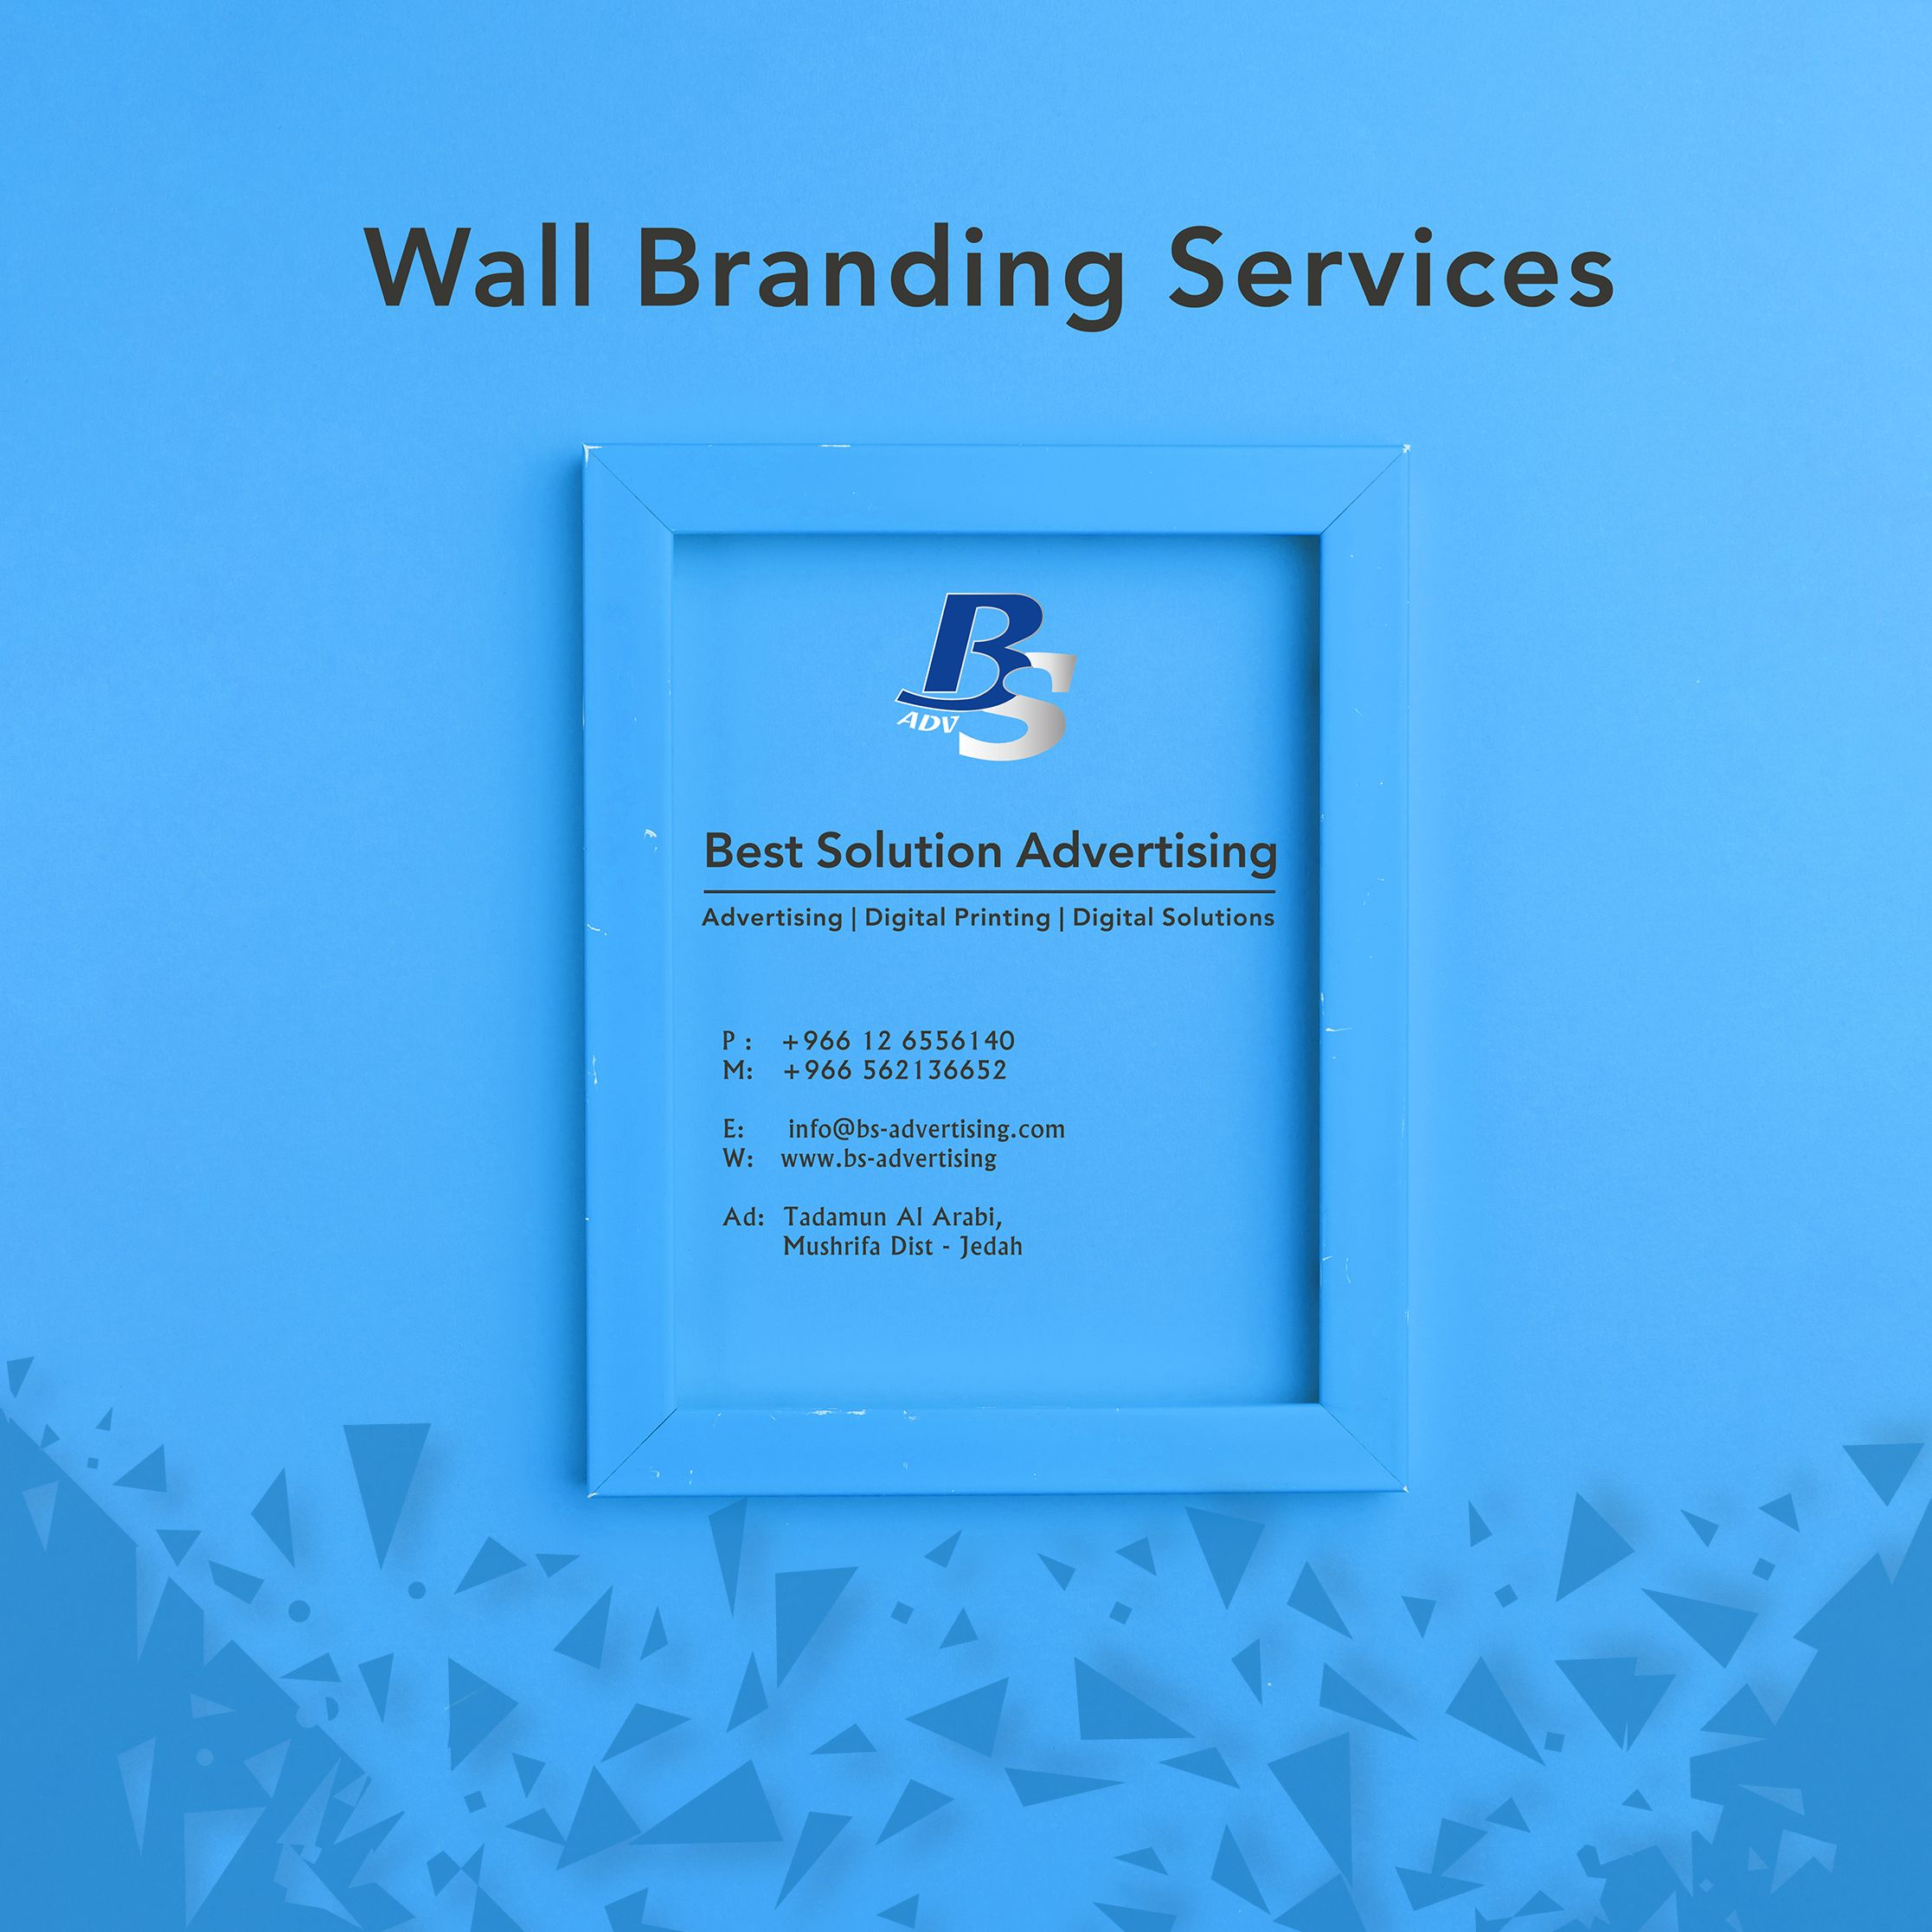 Wall Branding Services In Jeddah Advertising Services Branding Services Advertising Agency